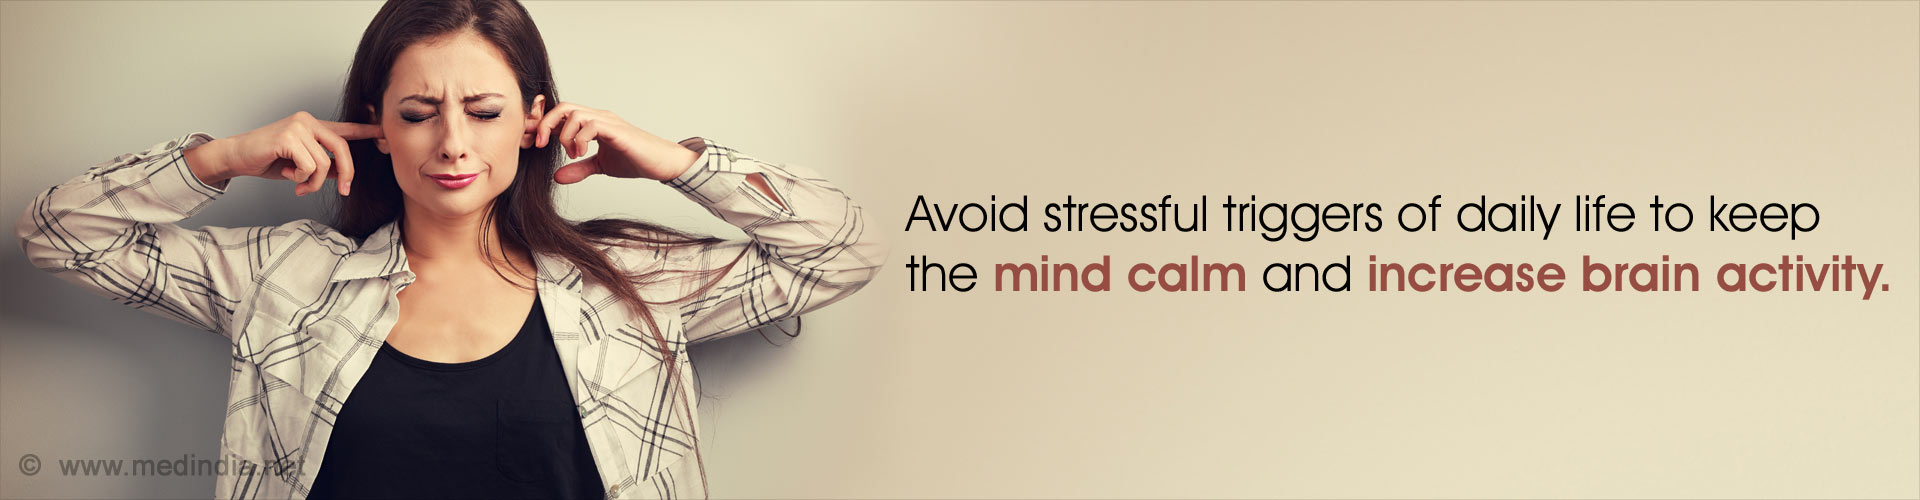 Stress Busters - Slideshow